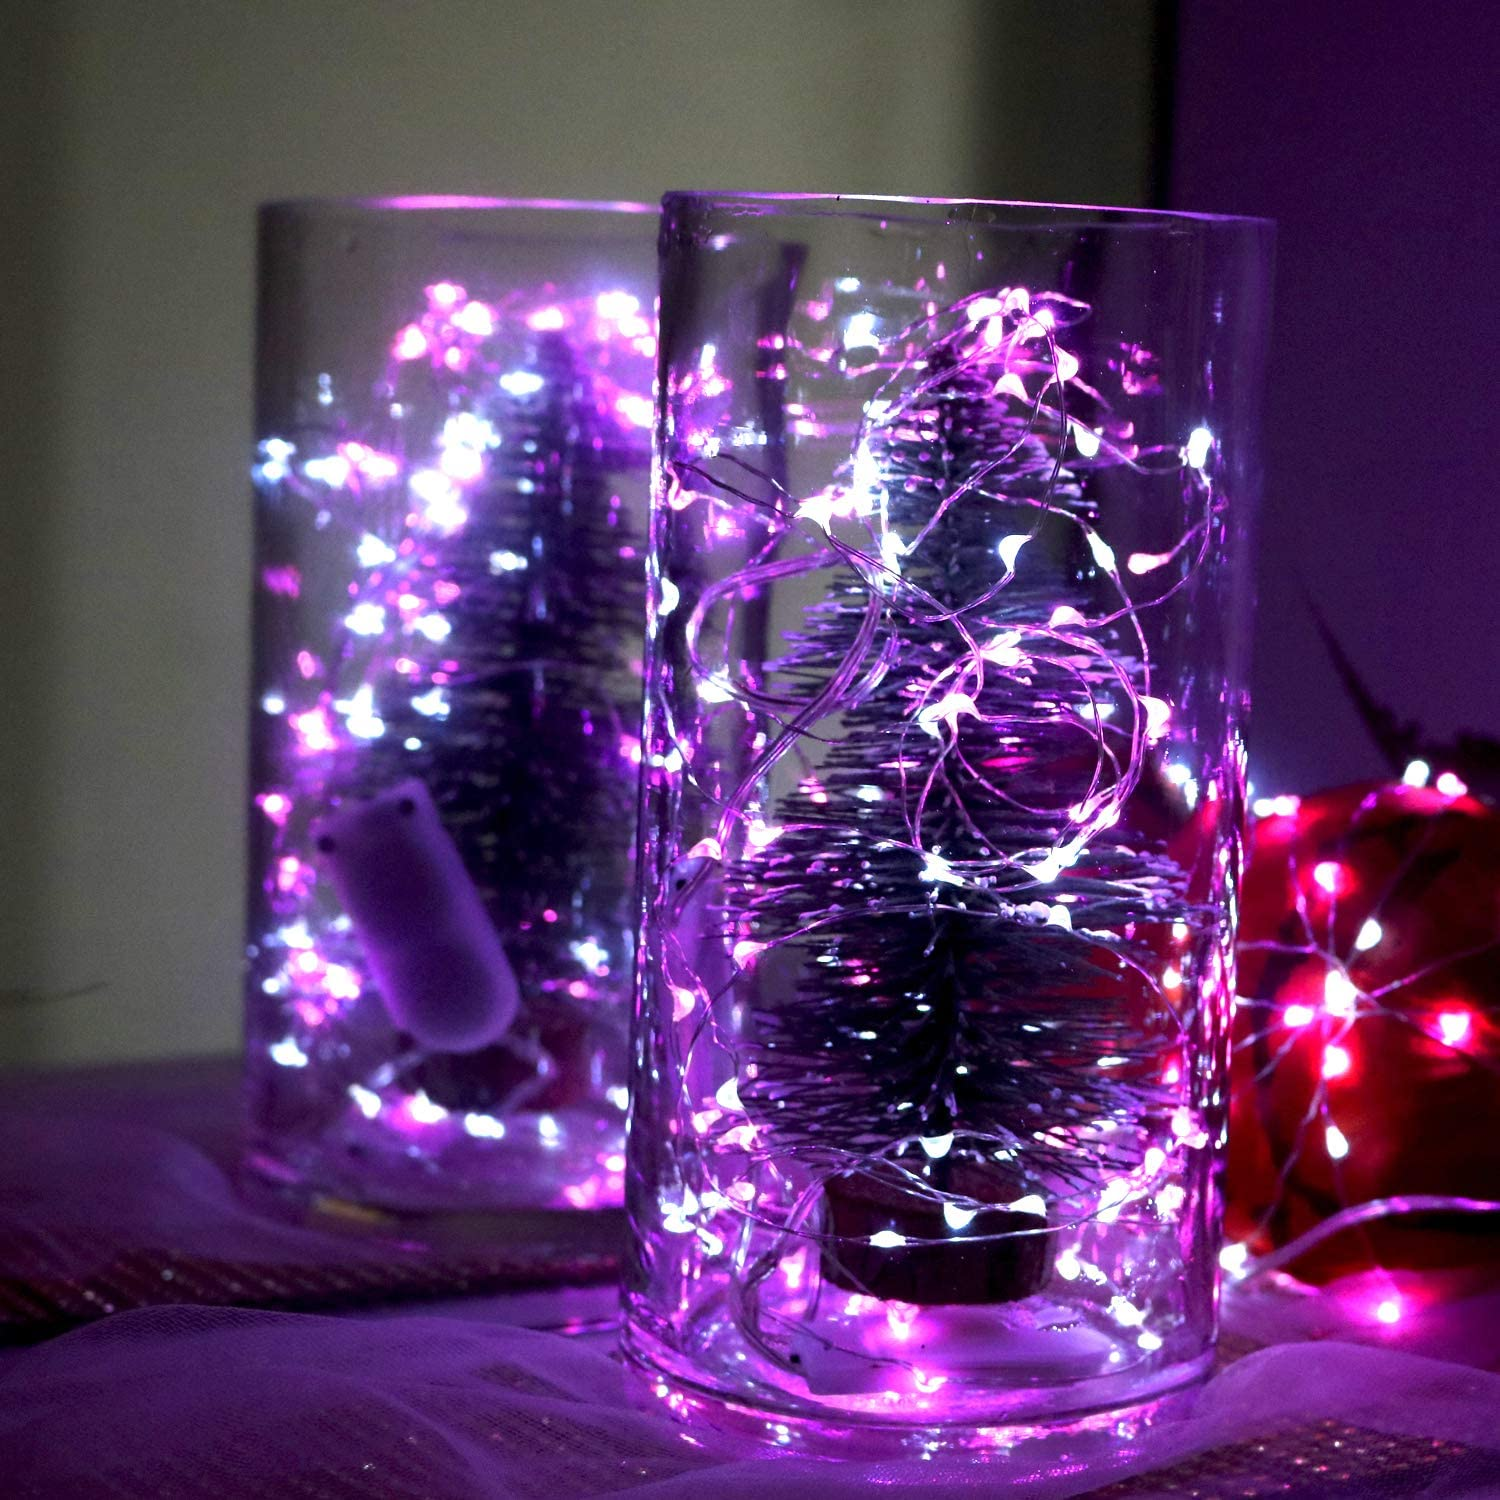 OakHaomie 6PCS 10ft 3m for DIY Wedding Centerpiece Table Decorations Cool White LED Starry String Lights 30 Micro LEDs on Silvery Copper Wire,2pcs CR2032 Batteries Required and Included